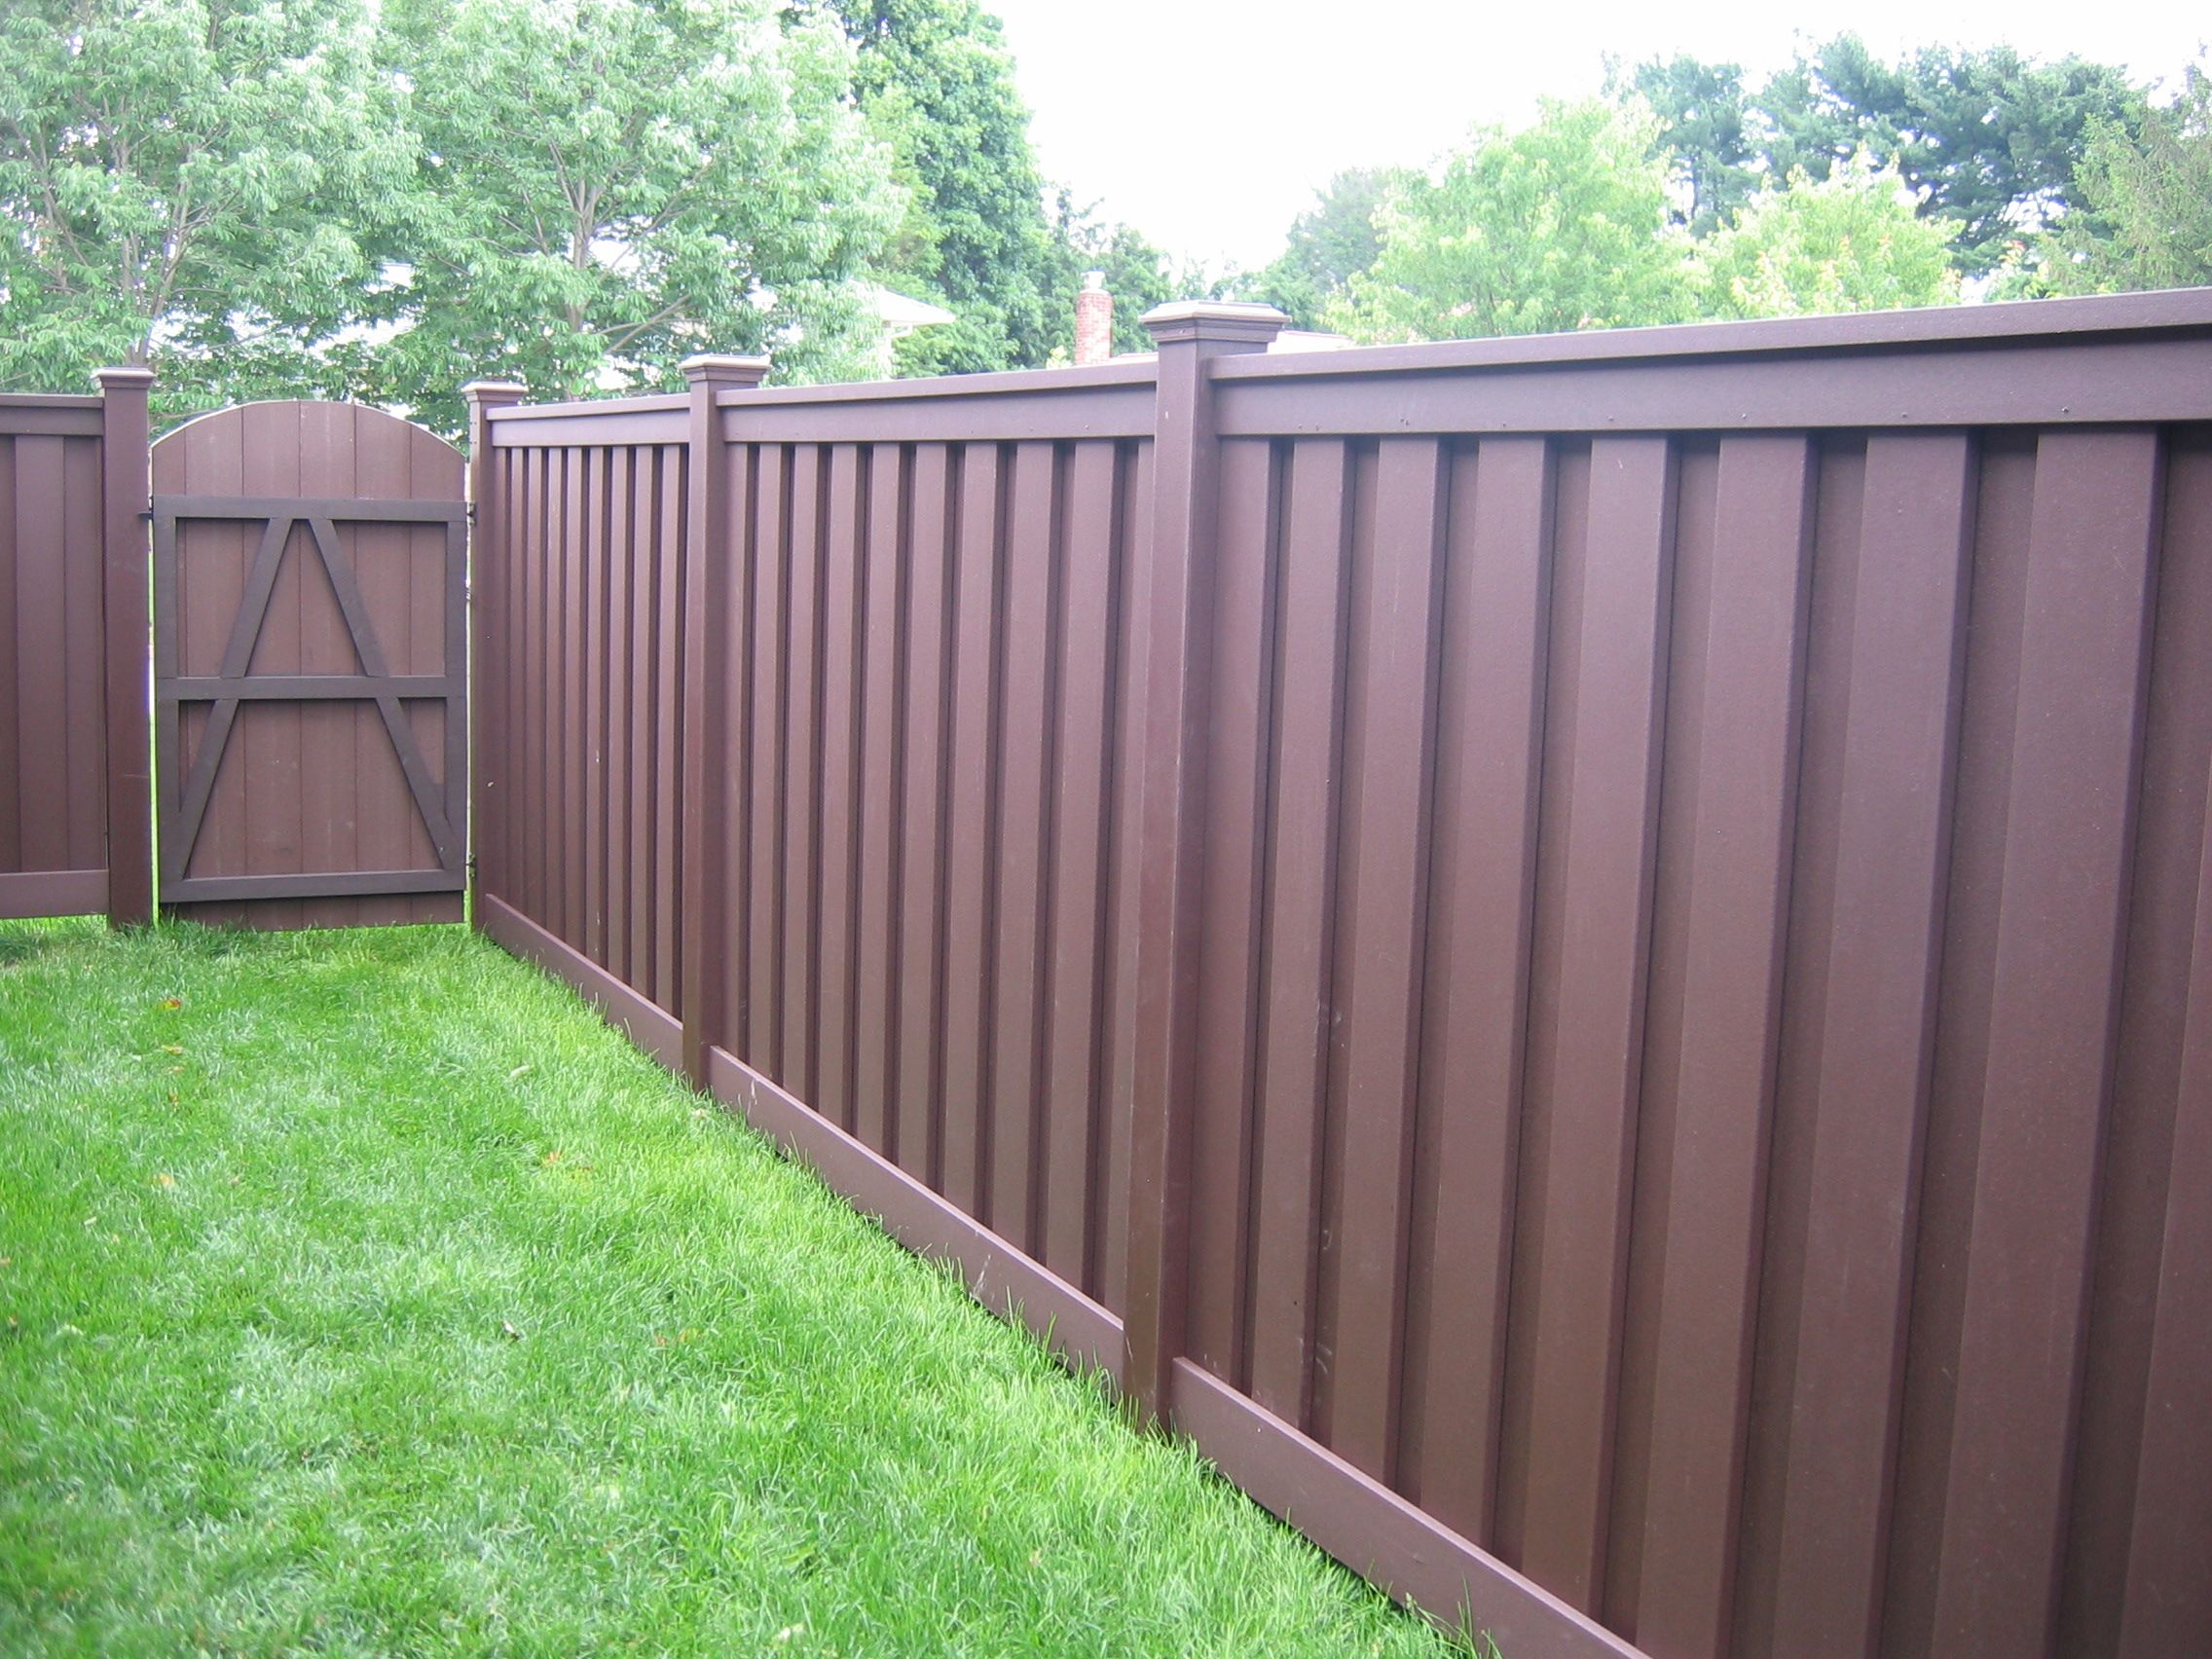 Wood Privacy Fence Distributor Wpc Fence Cost Per Linear Foot